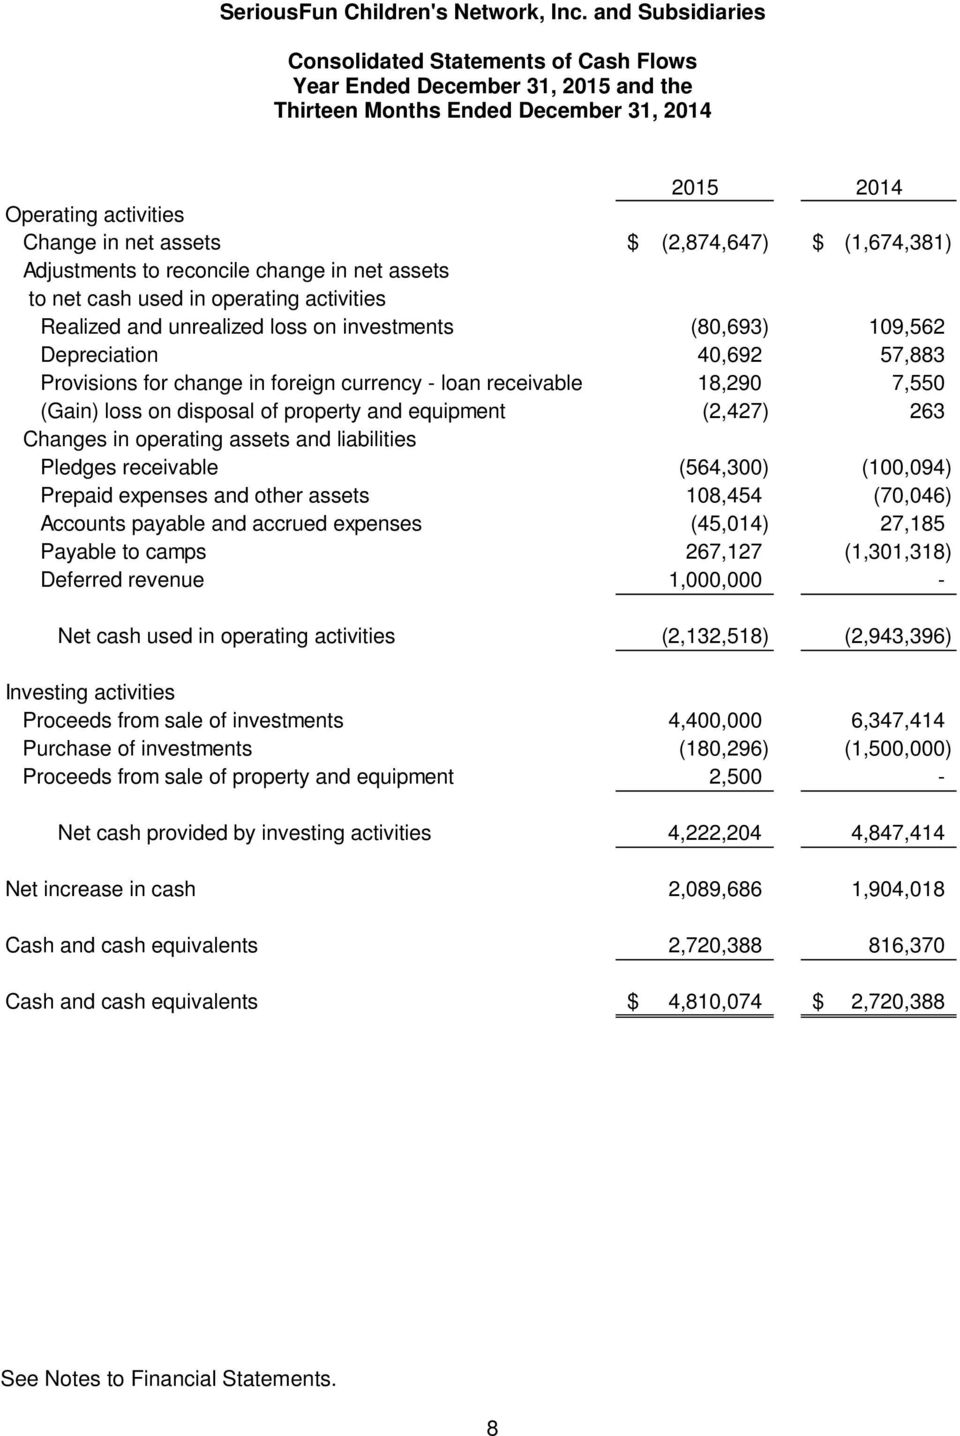 foreign currency - loan receivable 18,290 7,550 (Gain) loss on disposal of property and equipment (2,427) 263 Changes in operating assets and liabilities Pledges receivable (564,300) (100,094)